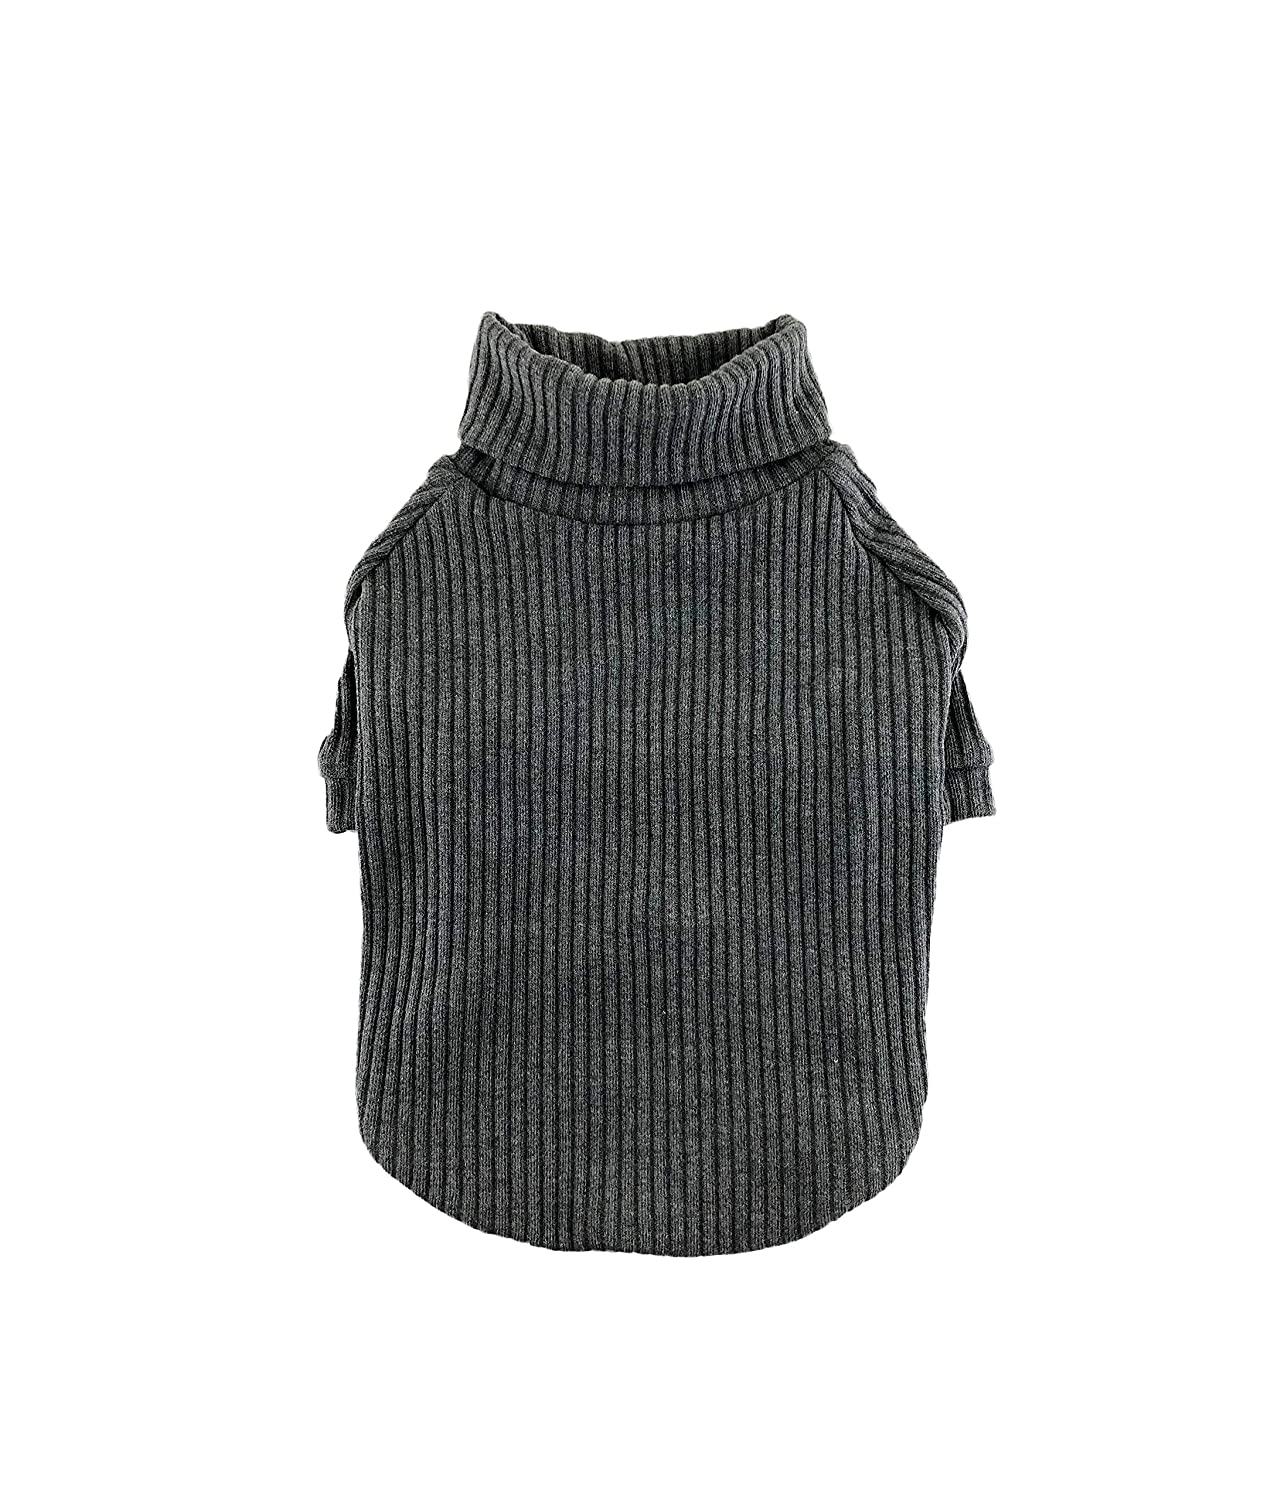 Dark Gray Rib Knit Turtleneck Top, Dog Sweater, Dog Clothing, Dog Fashion, Dog Apparel, XS-3XL